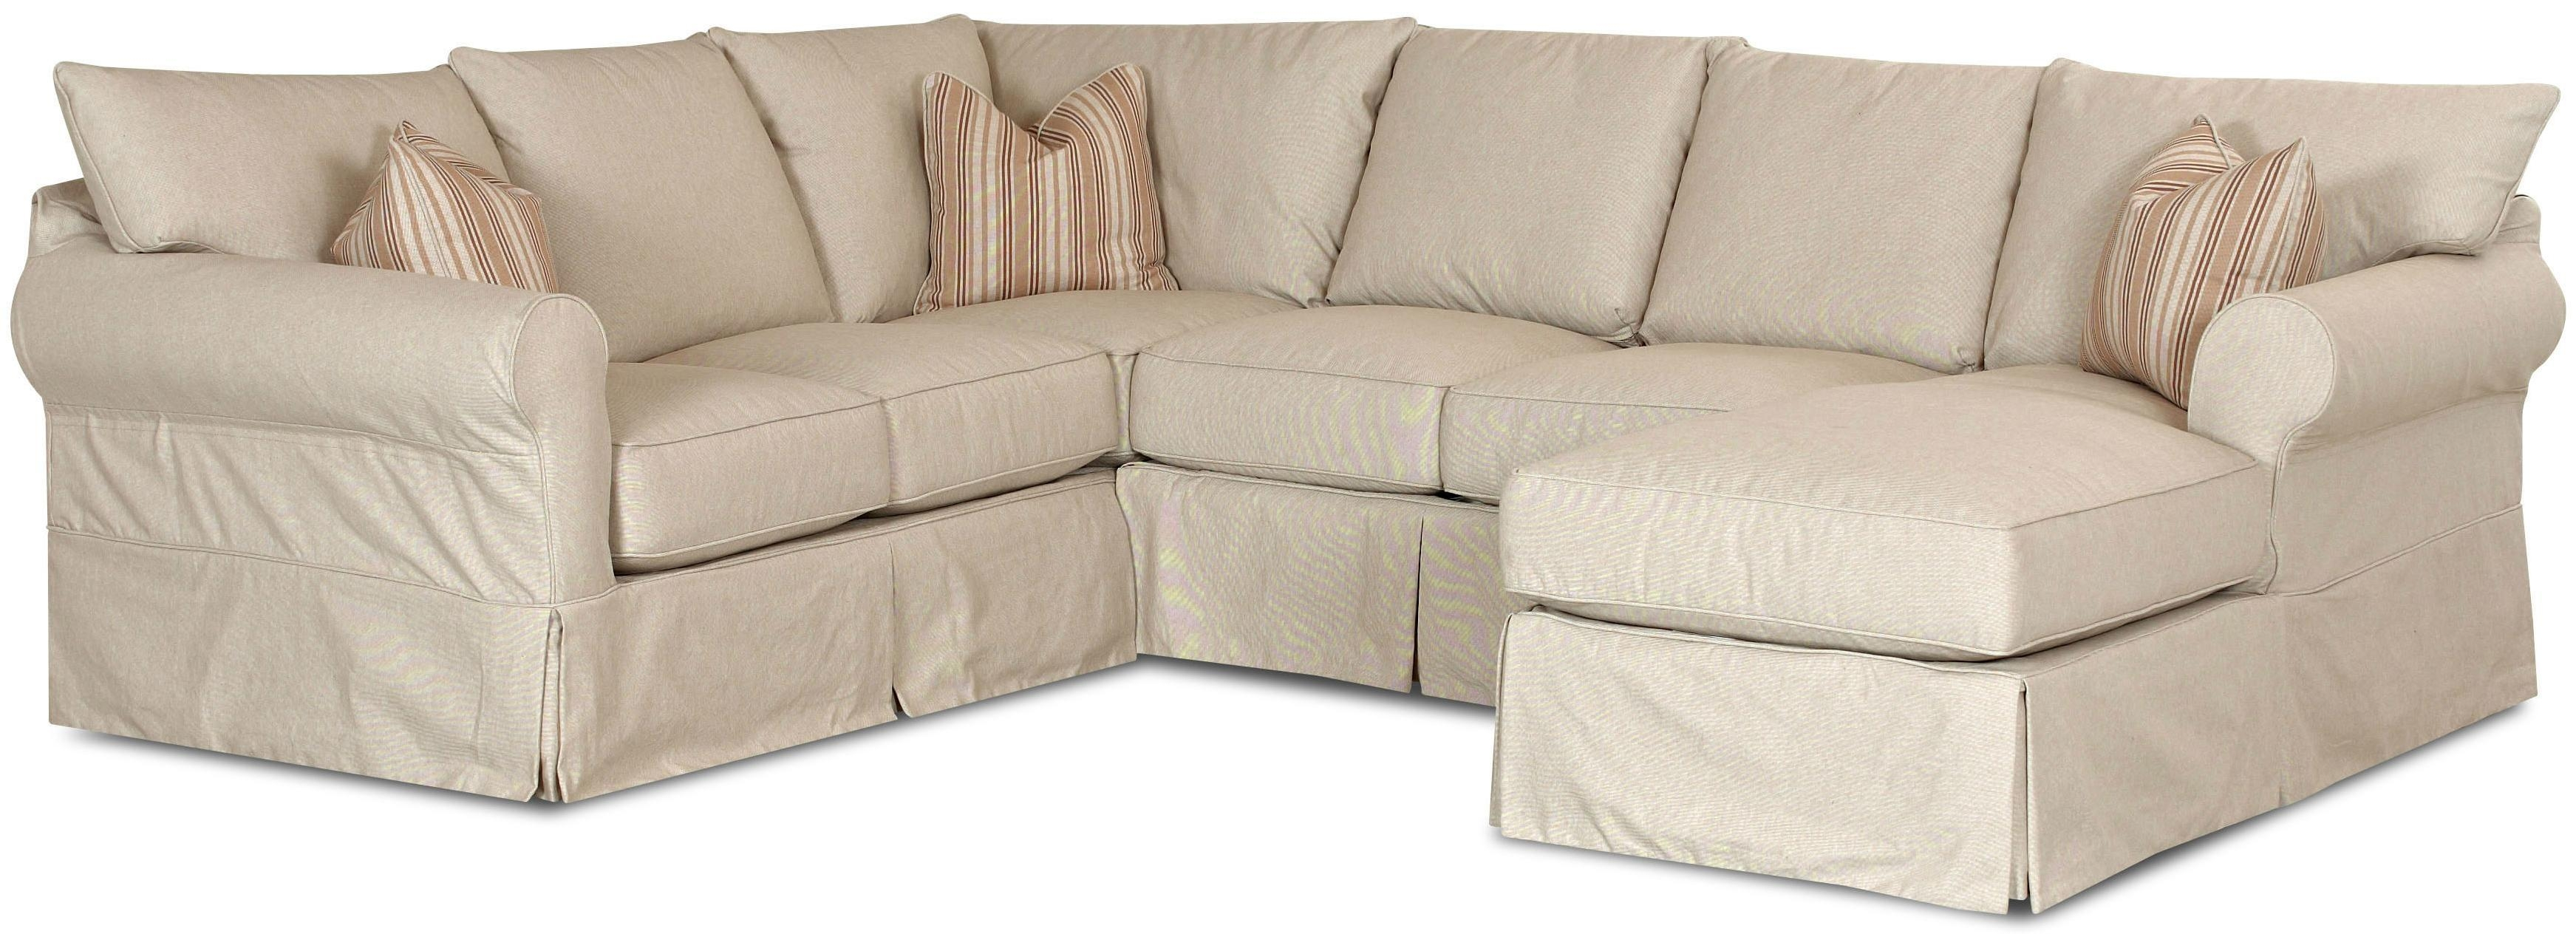 Leather Sectional Sofa Slipcovers • Leather Sofa Throughout Slipcover For Leather Sectional Sofas (View 14 of 21)